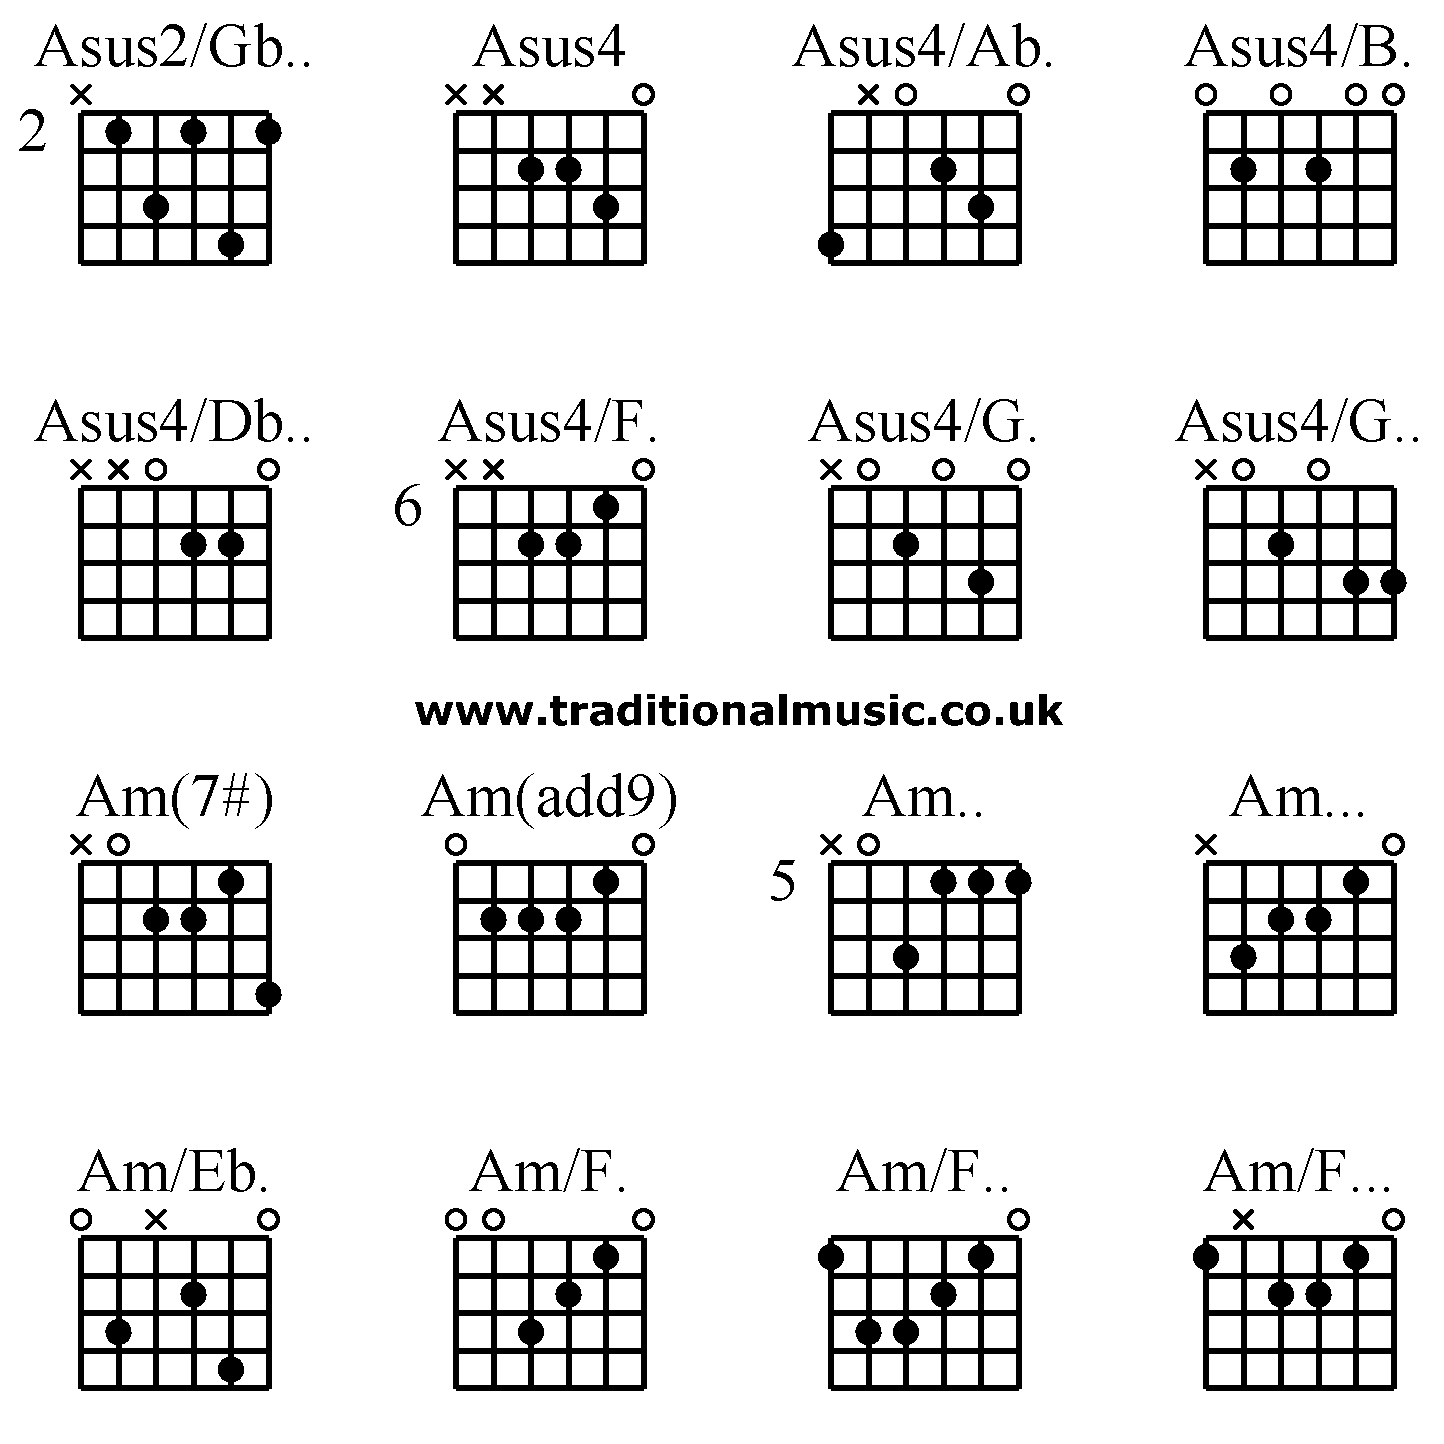 Advanced Guitar Chords Asus2 Gb Asus4 Asus4 Ab Asus4 B